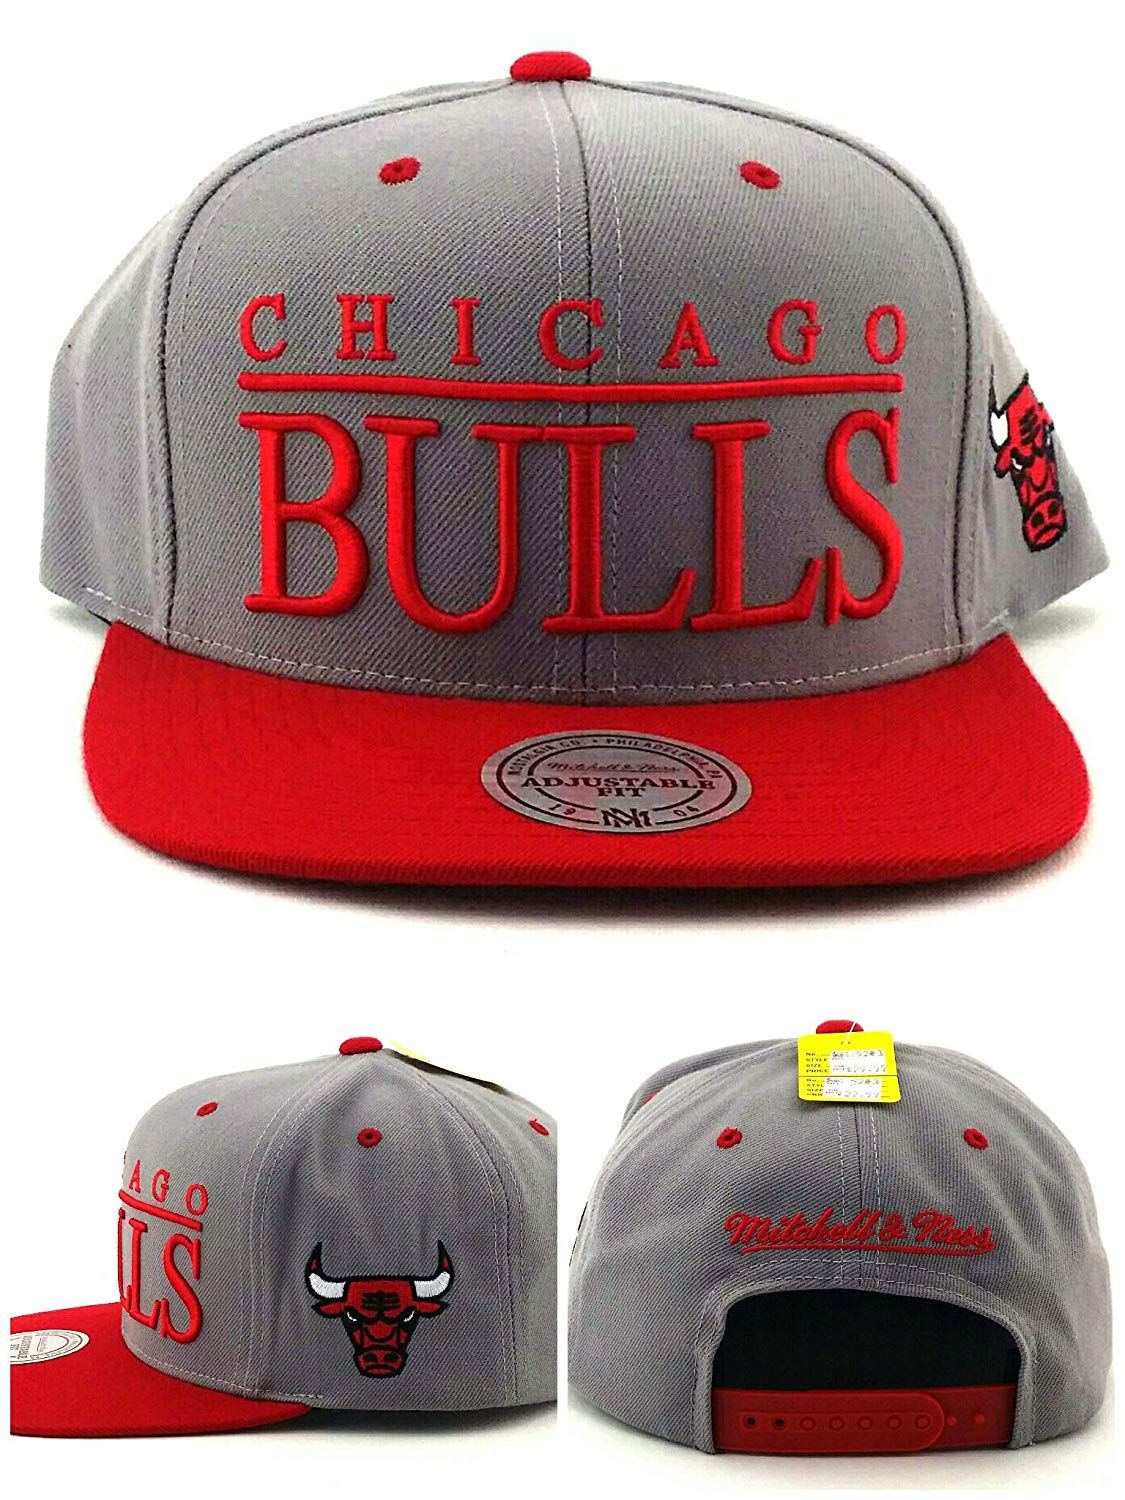 ae8a98ecadf695 Chicago Bulls TOP SHELF Gray/Red SNAPBACK Mitchell & Ness NBA Hat, $24.99